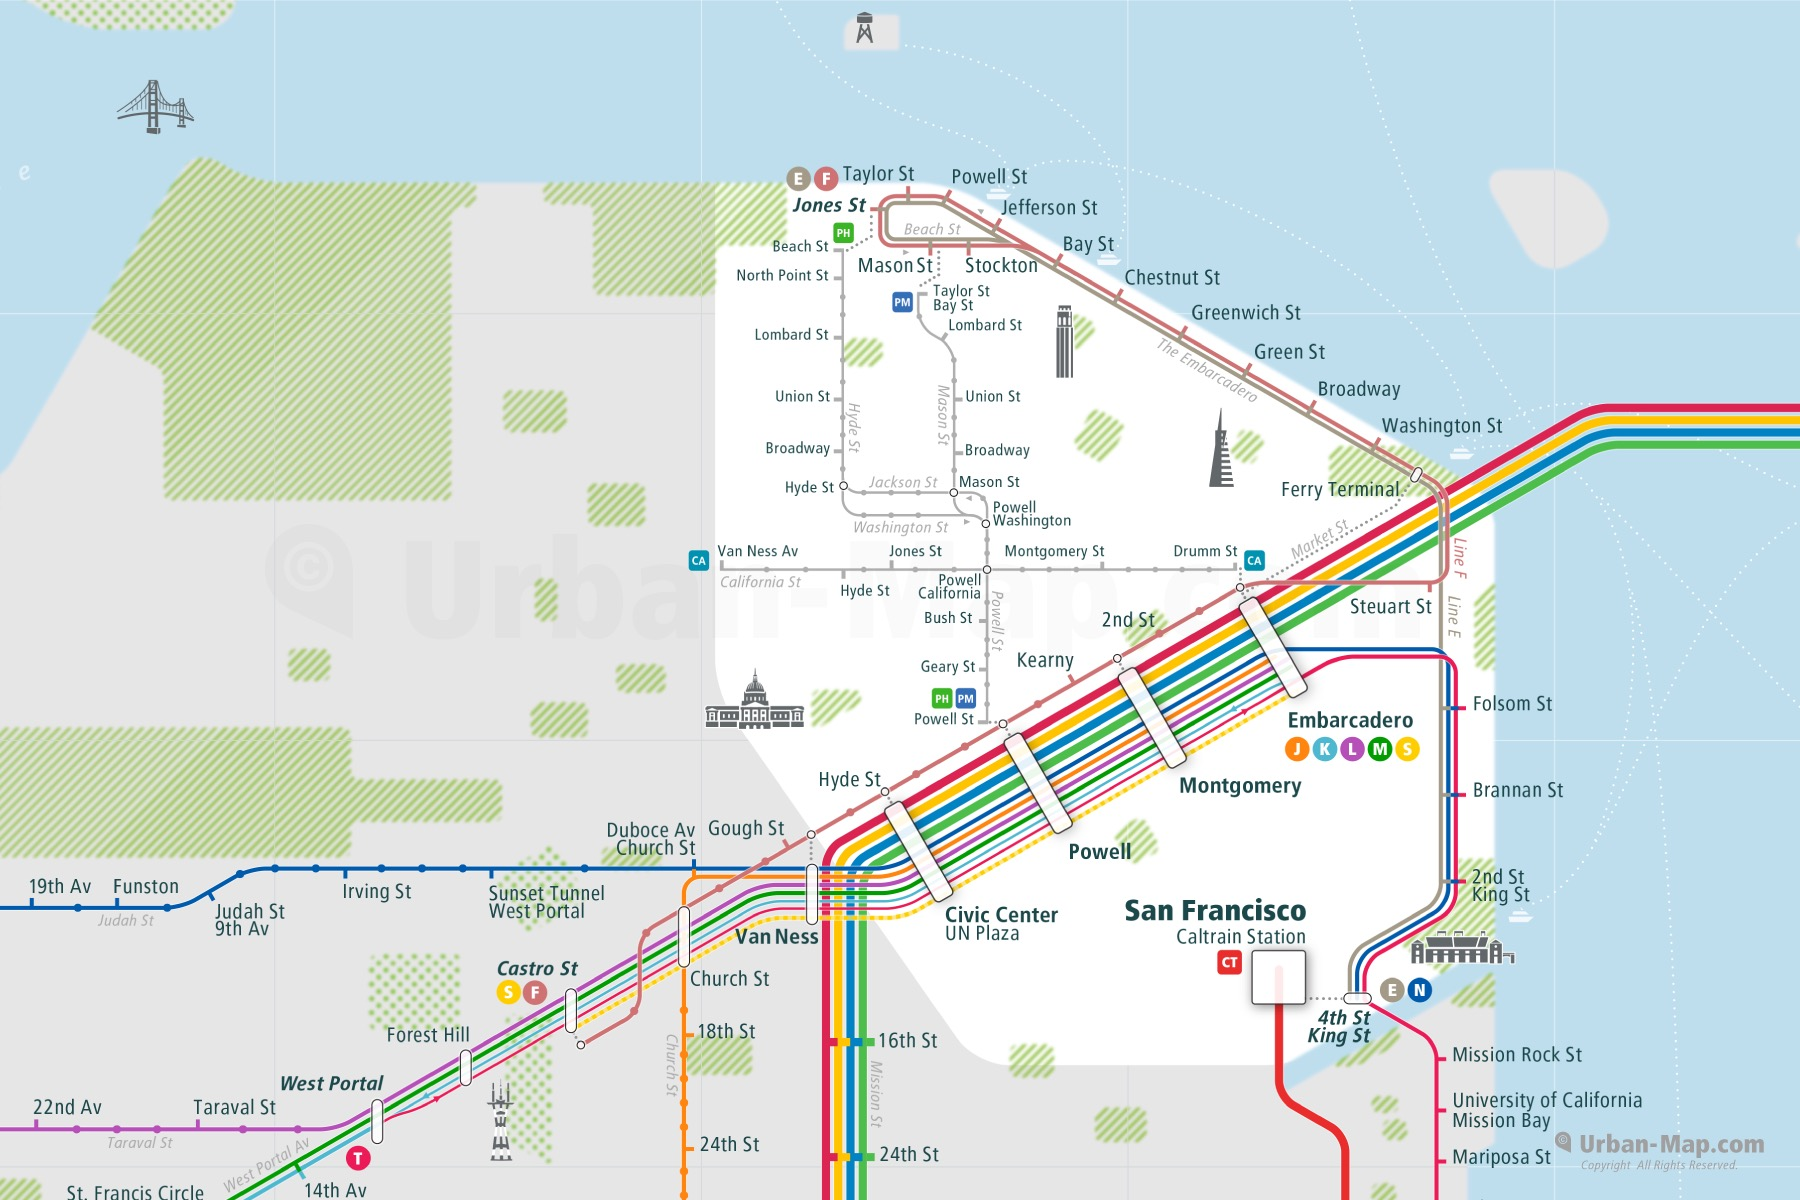 San Francisco City Rail Map shows the train and public transportation routes of - Close-Up